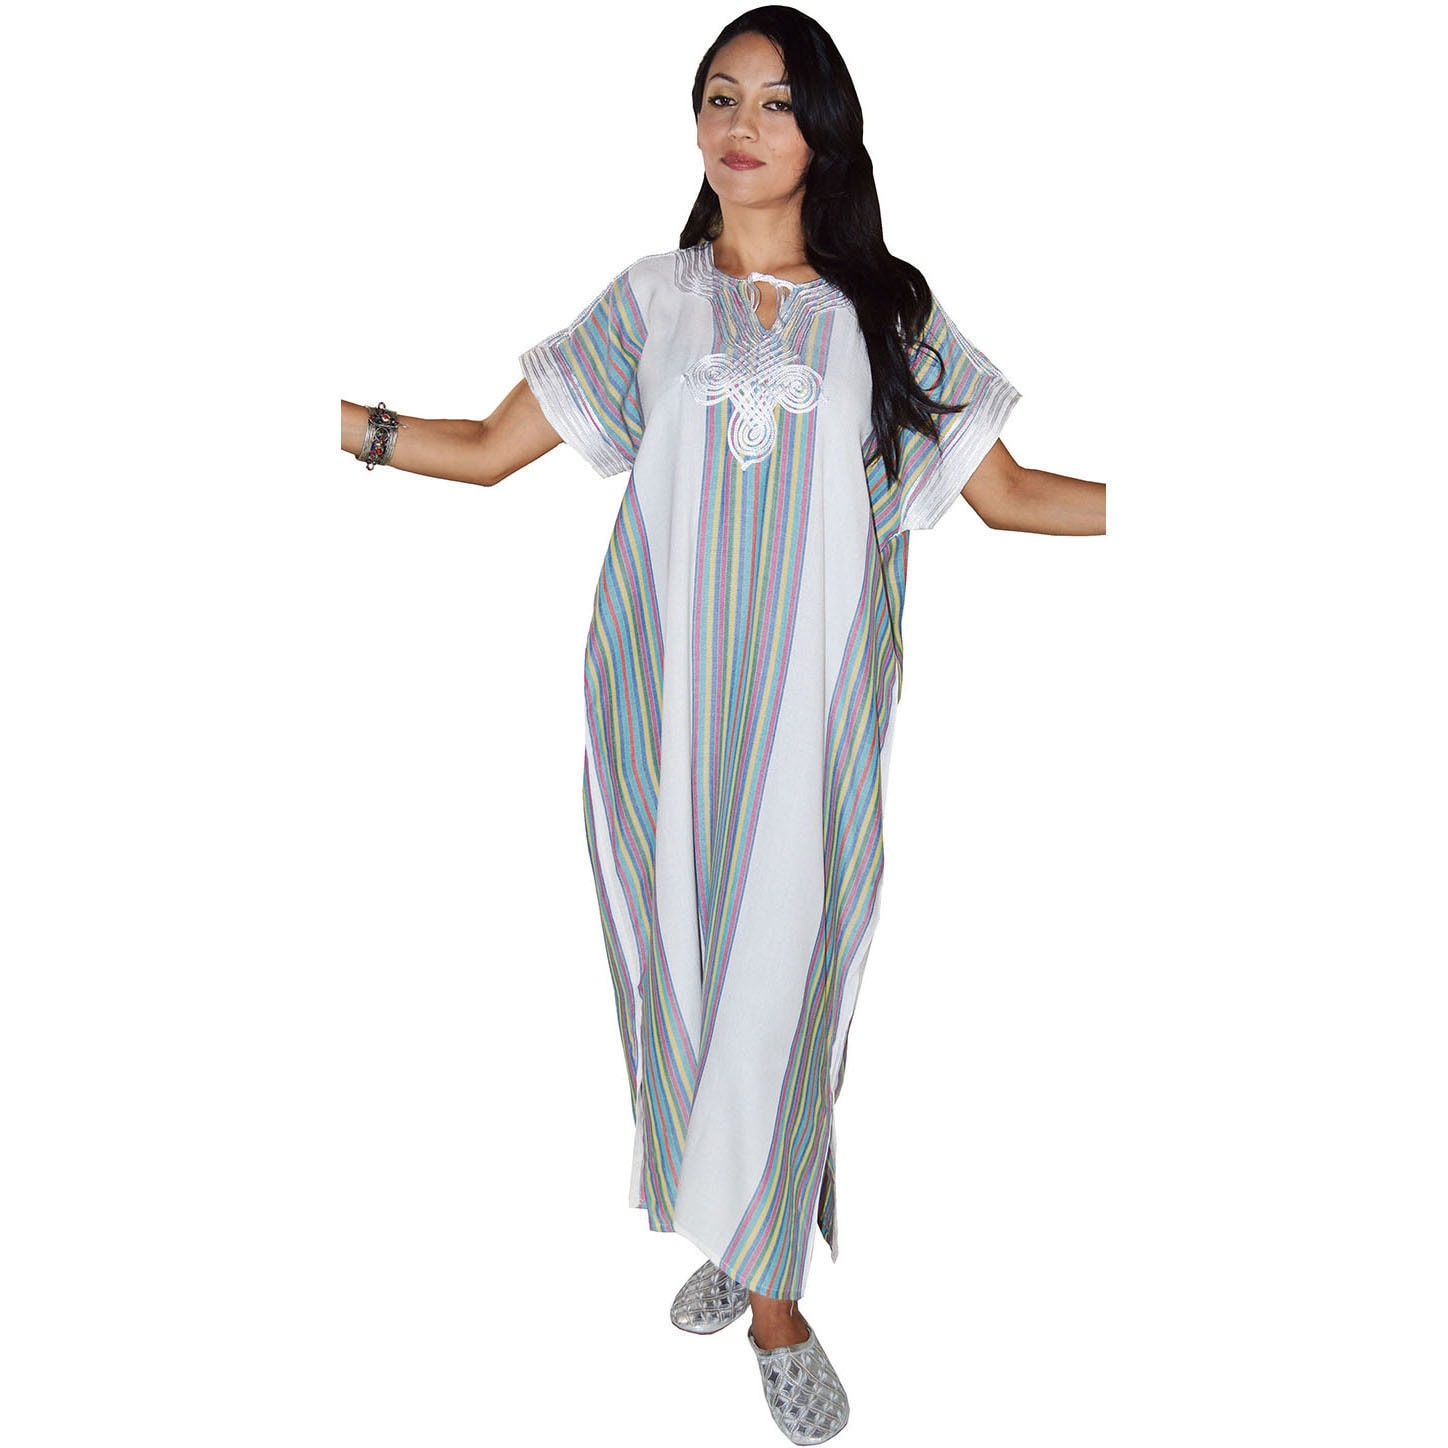 Moroccan Handmade Women's Linen Long Caftan with Hand Emb...